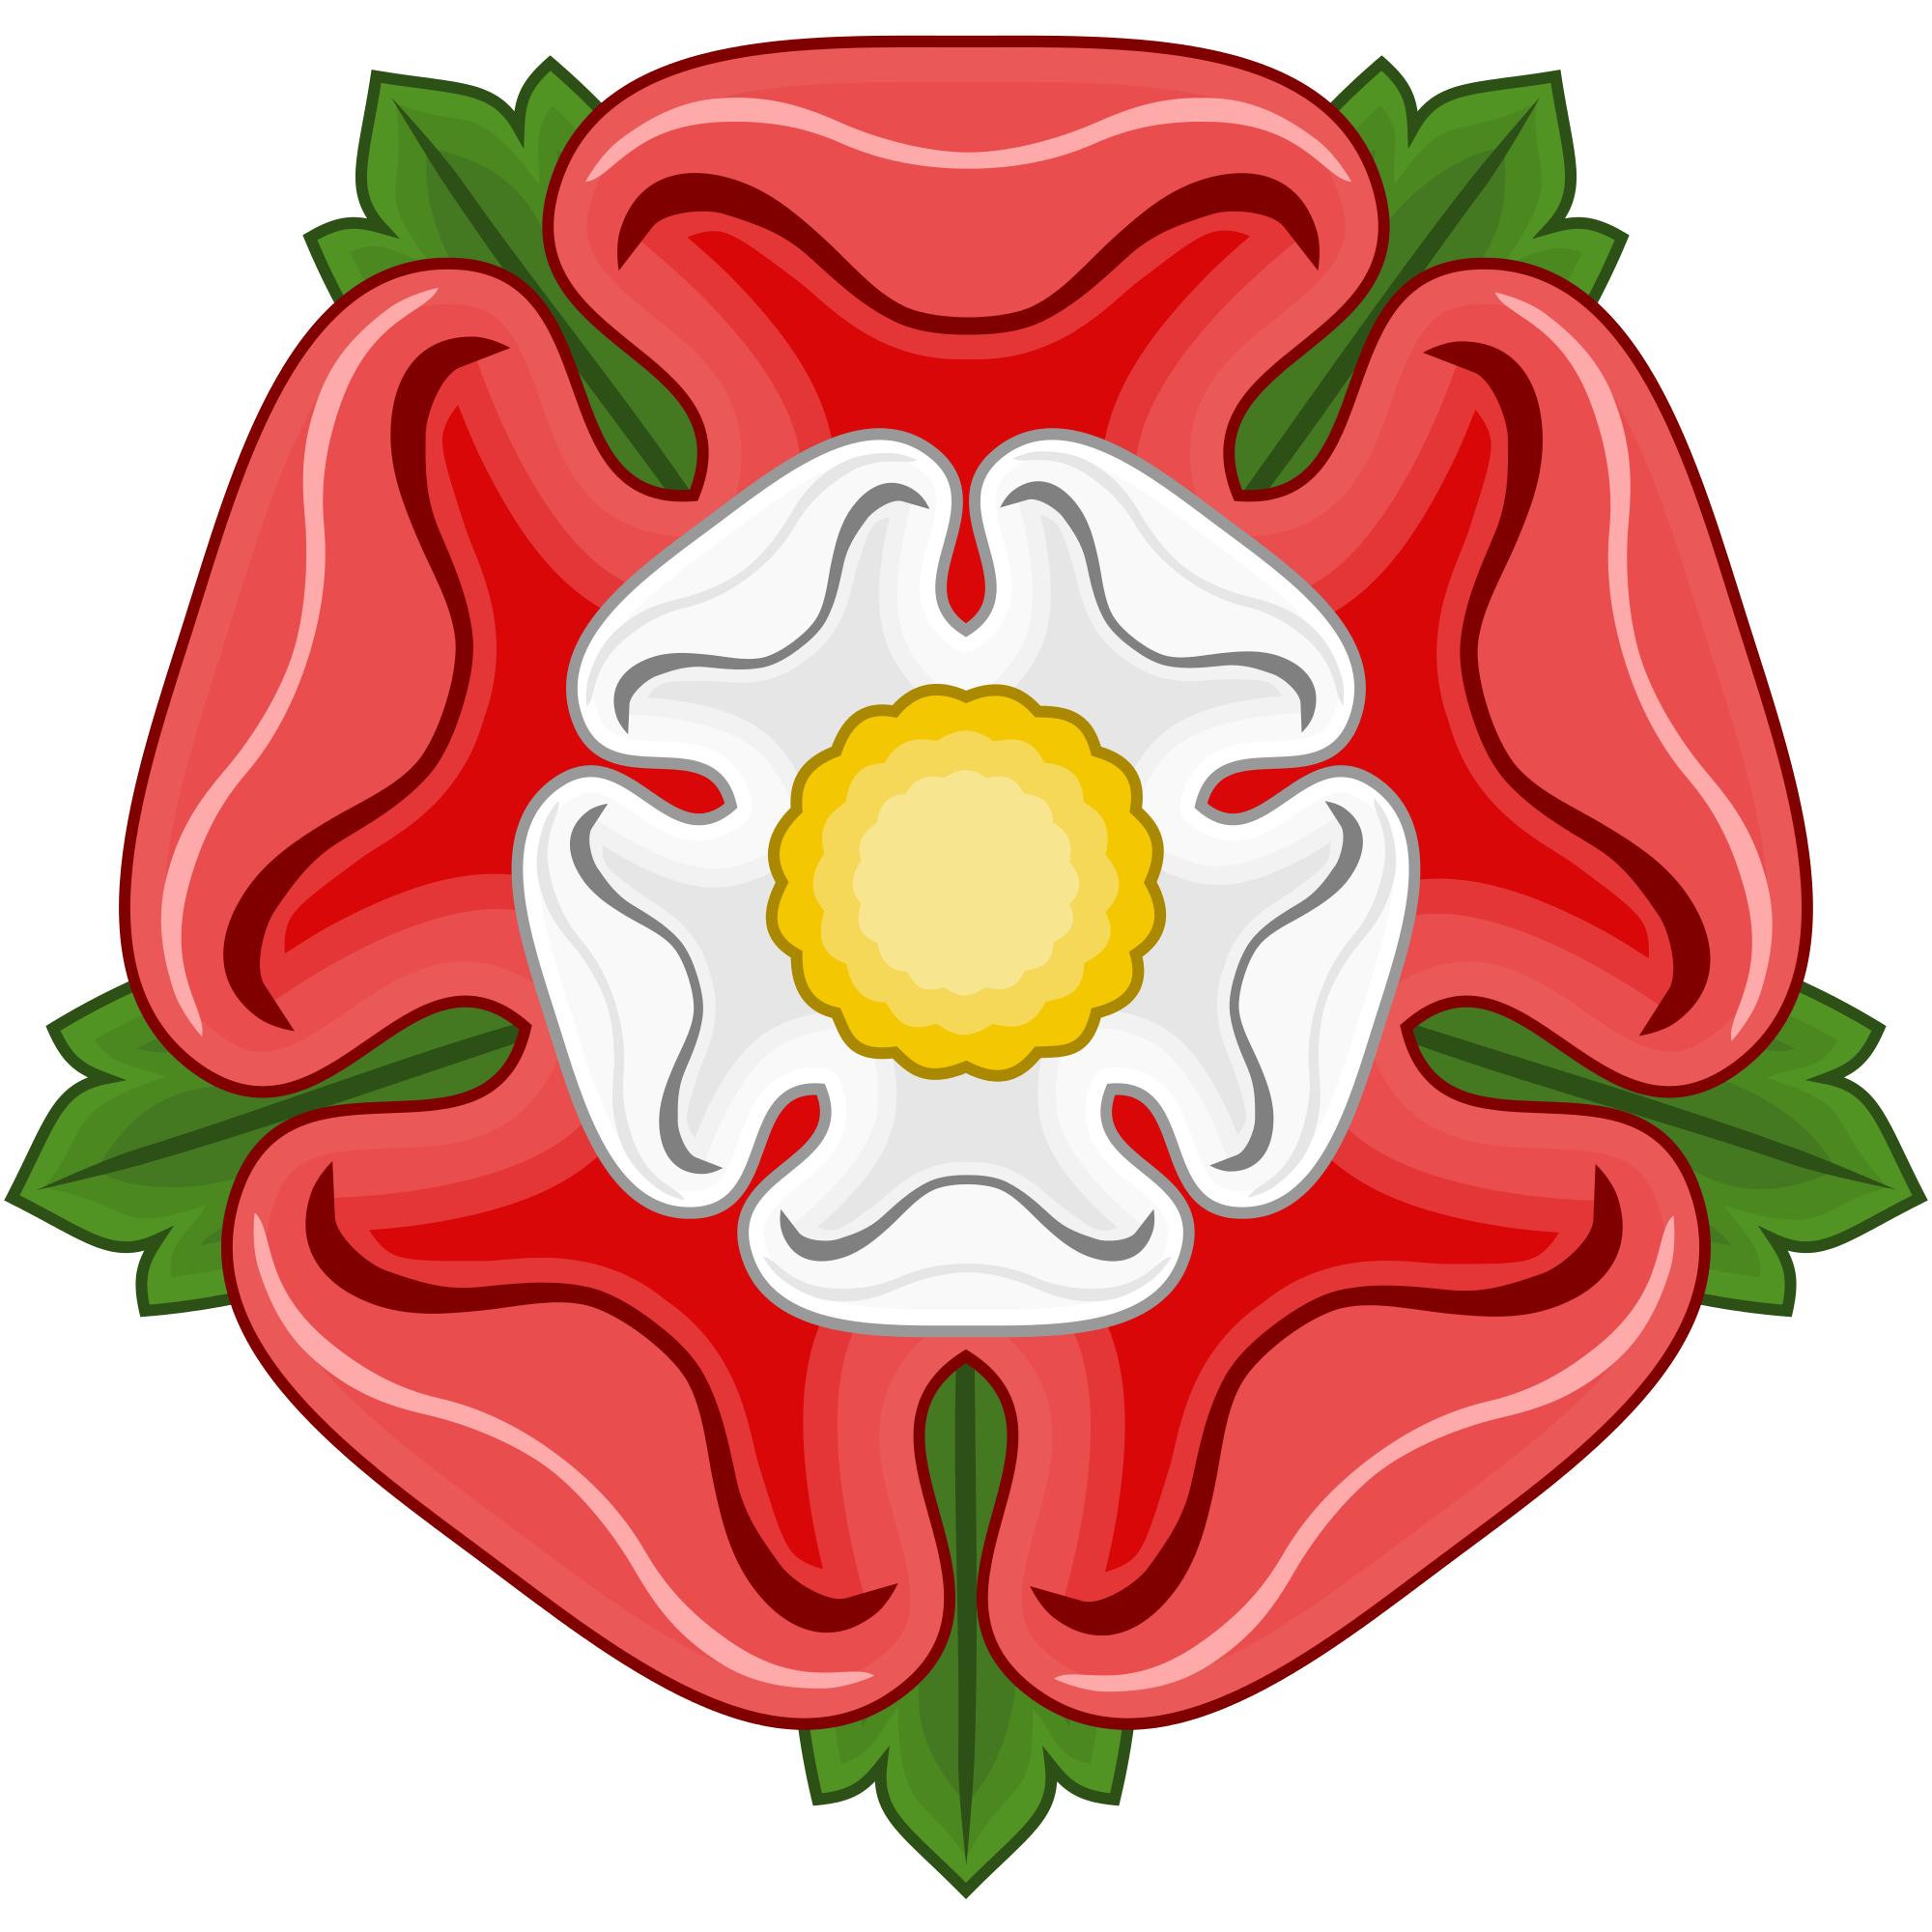 York clipart england. Free wikipedia page cliparts